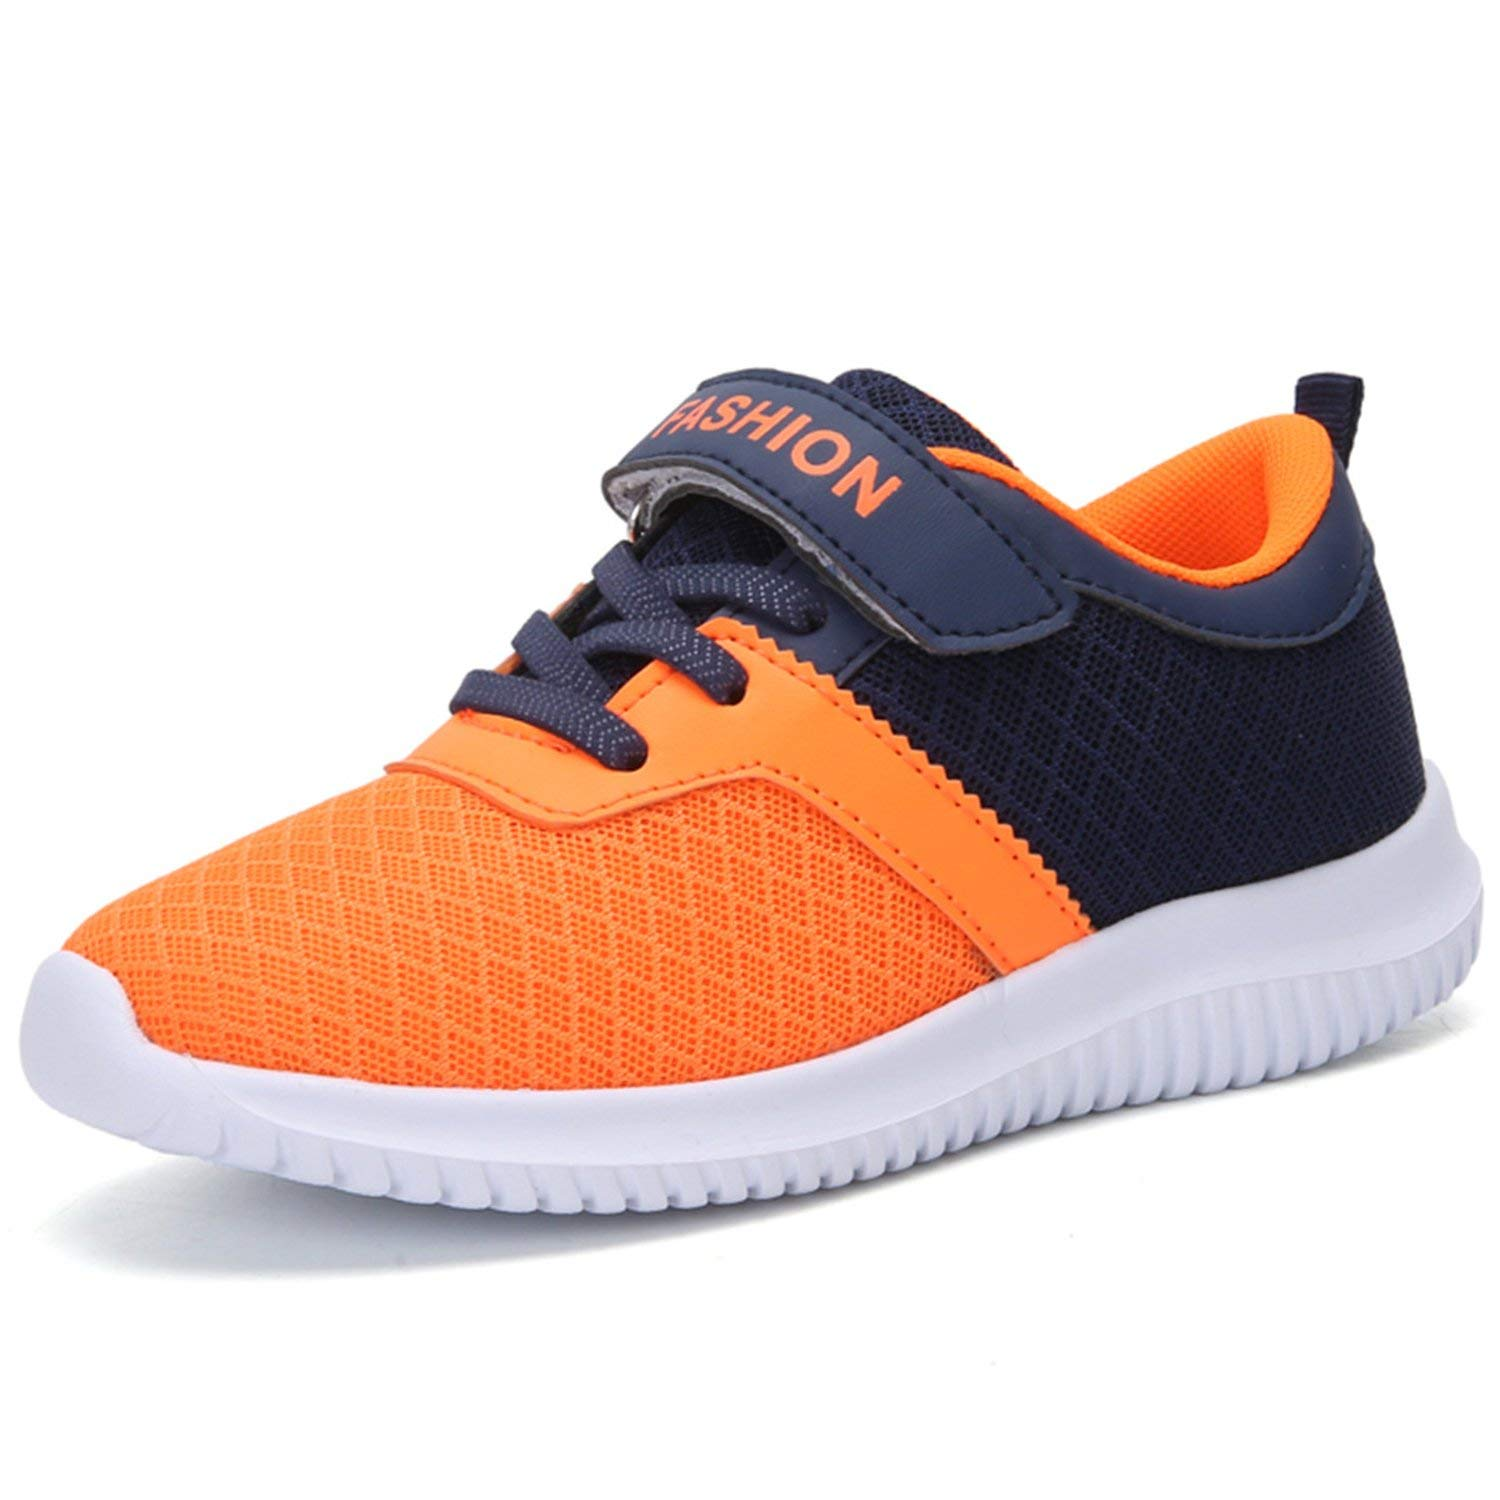 7527b4e803e Get Quotations · FEETCITY Kids Sneakers Lightweight Breathable Mesh Sports  Running Shoes for Boys and Girls